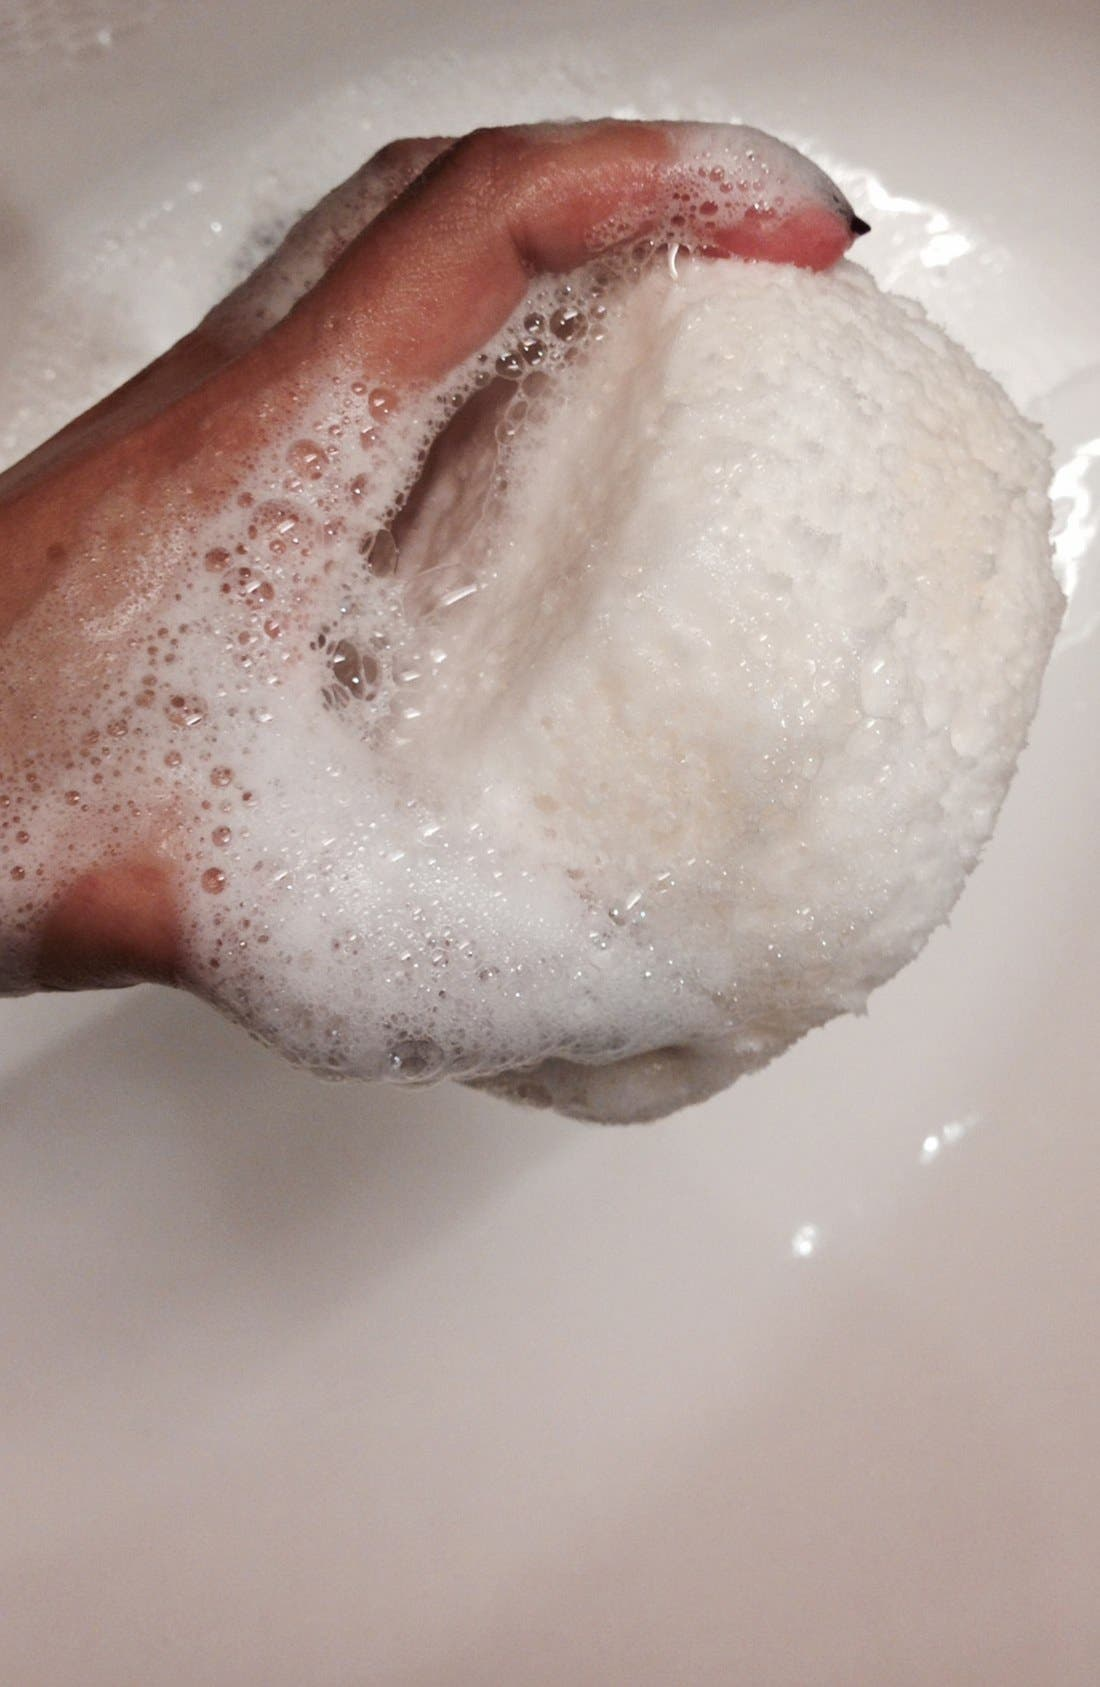 'Sexy 9 Blackberry & Vanilla Musk' Body Sponge,                             Alternate thumbnail 2, color,                             000